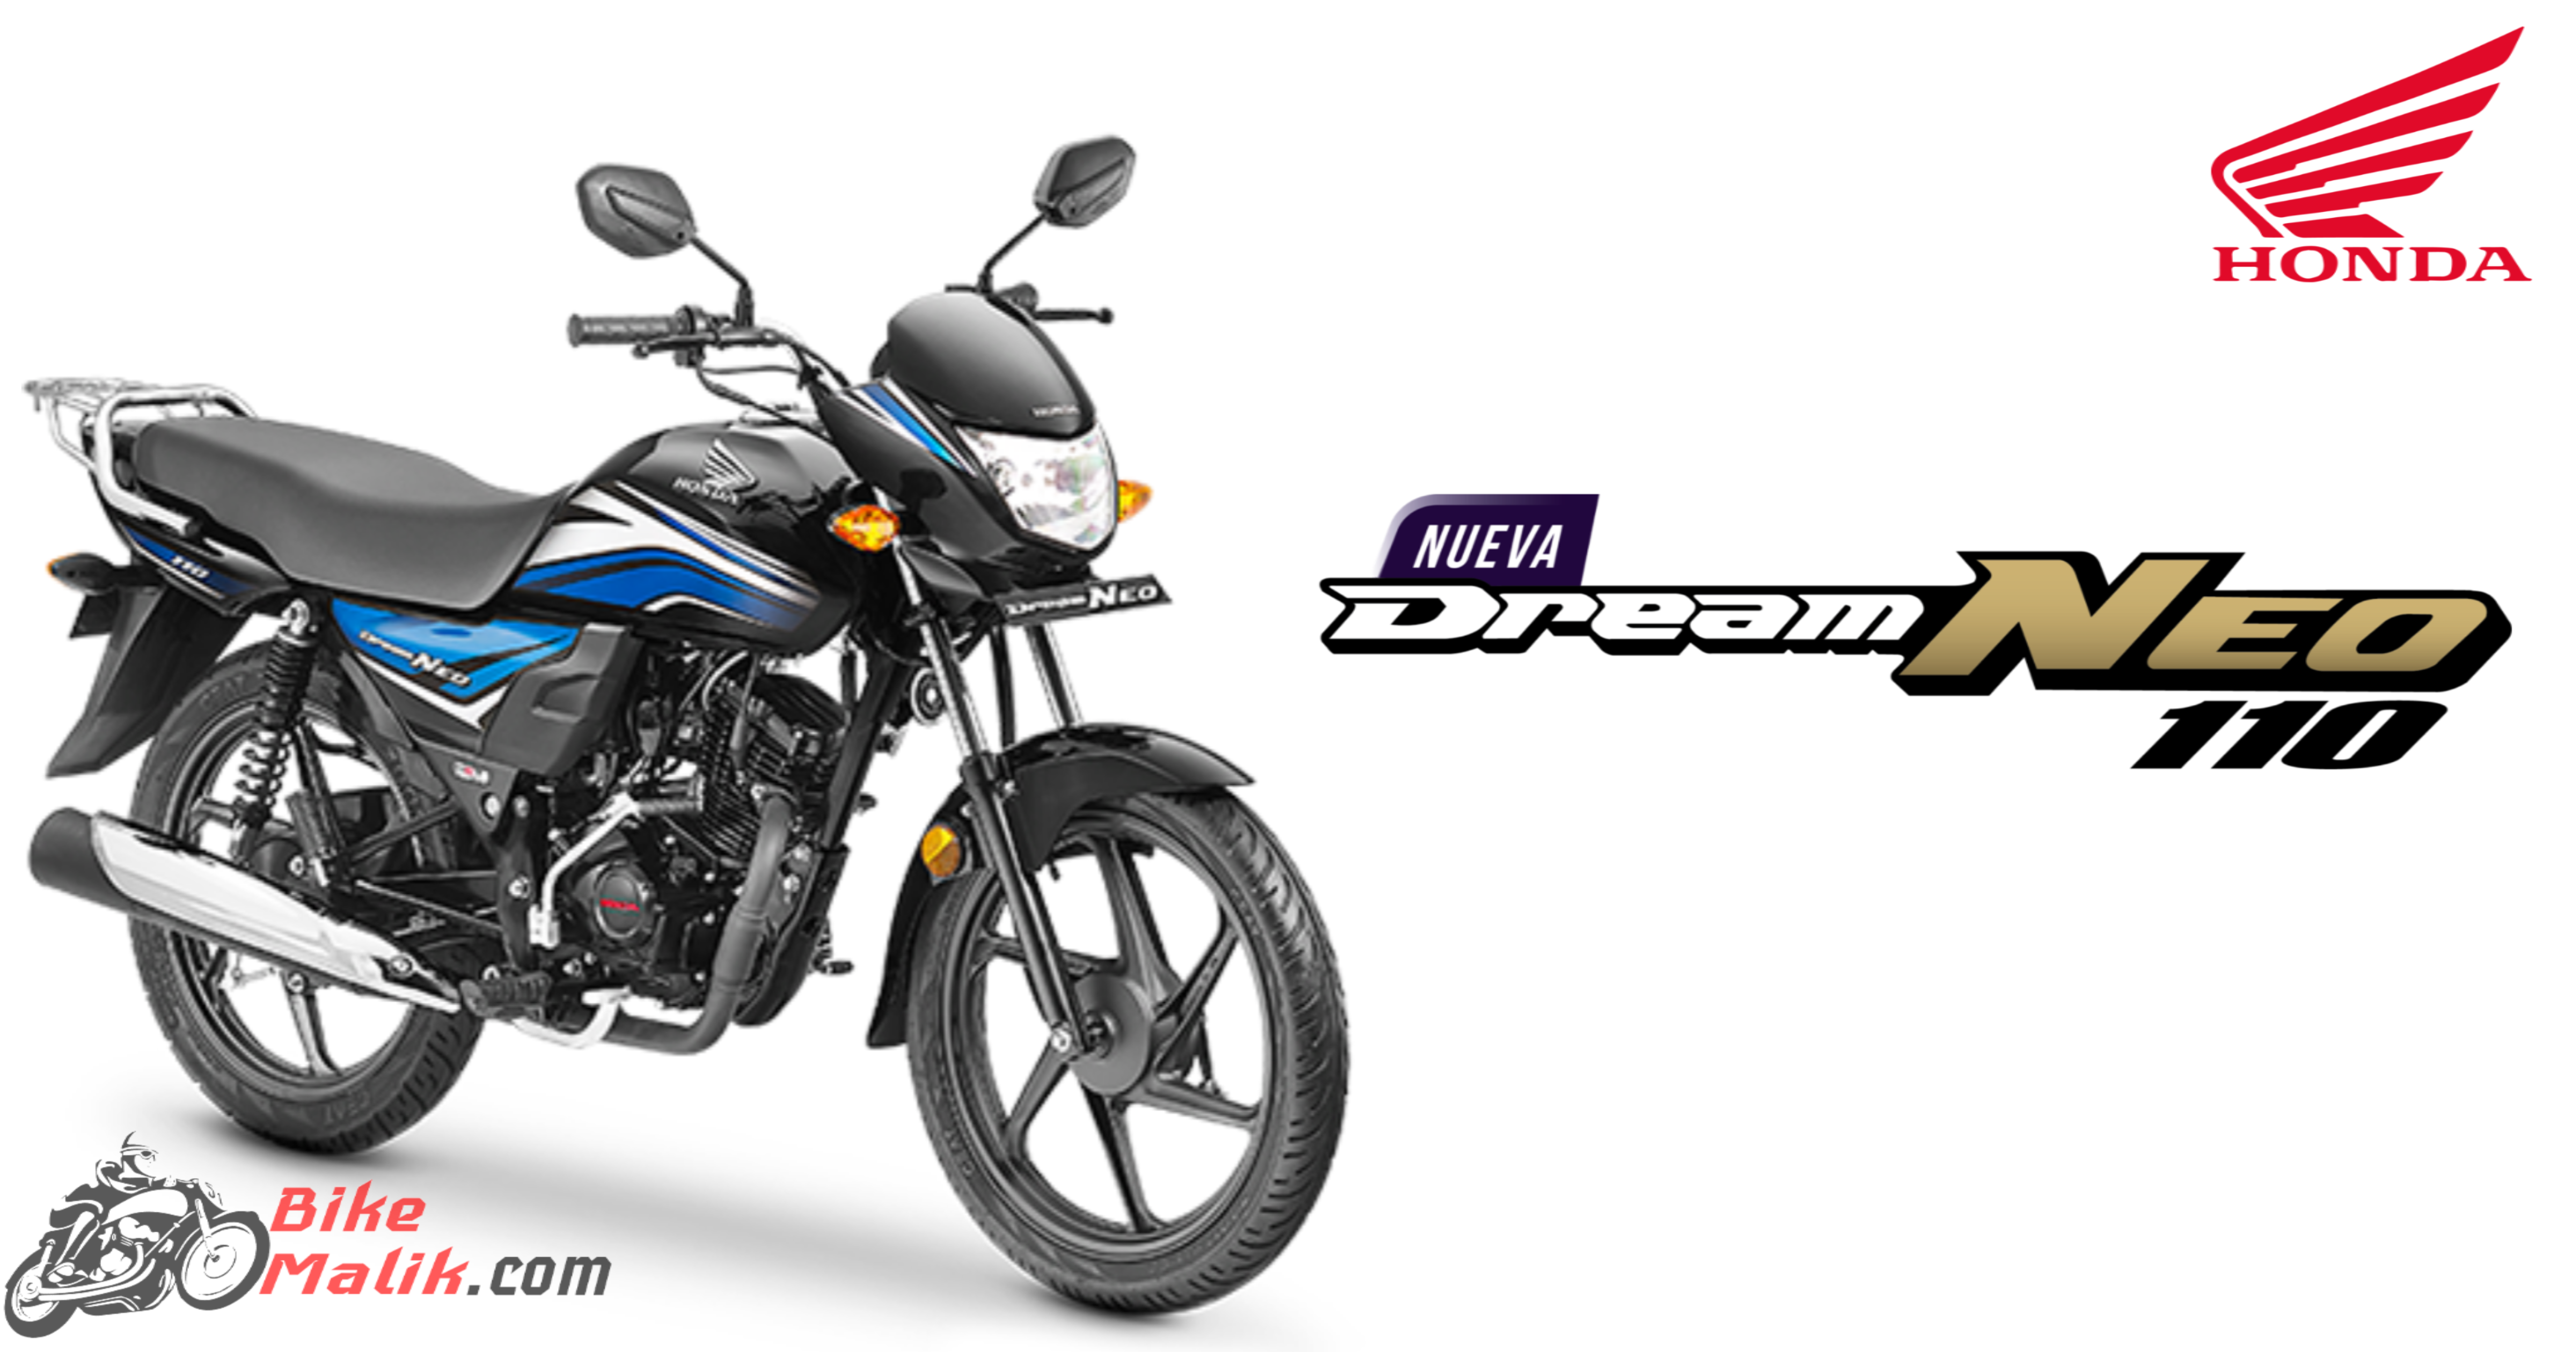 Honda Dream Neo Colors, Price, Mileage, Images, Performance, Specs, Features & 360 View